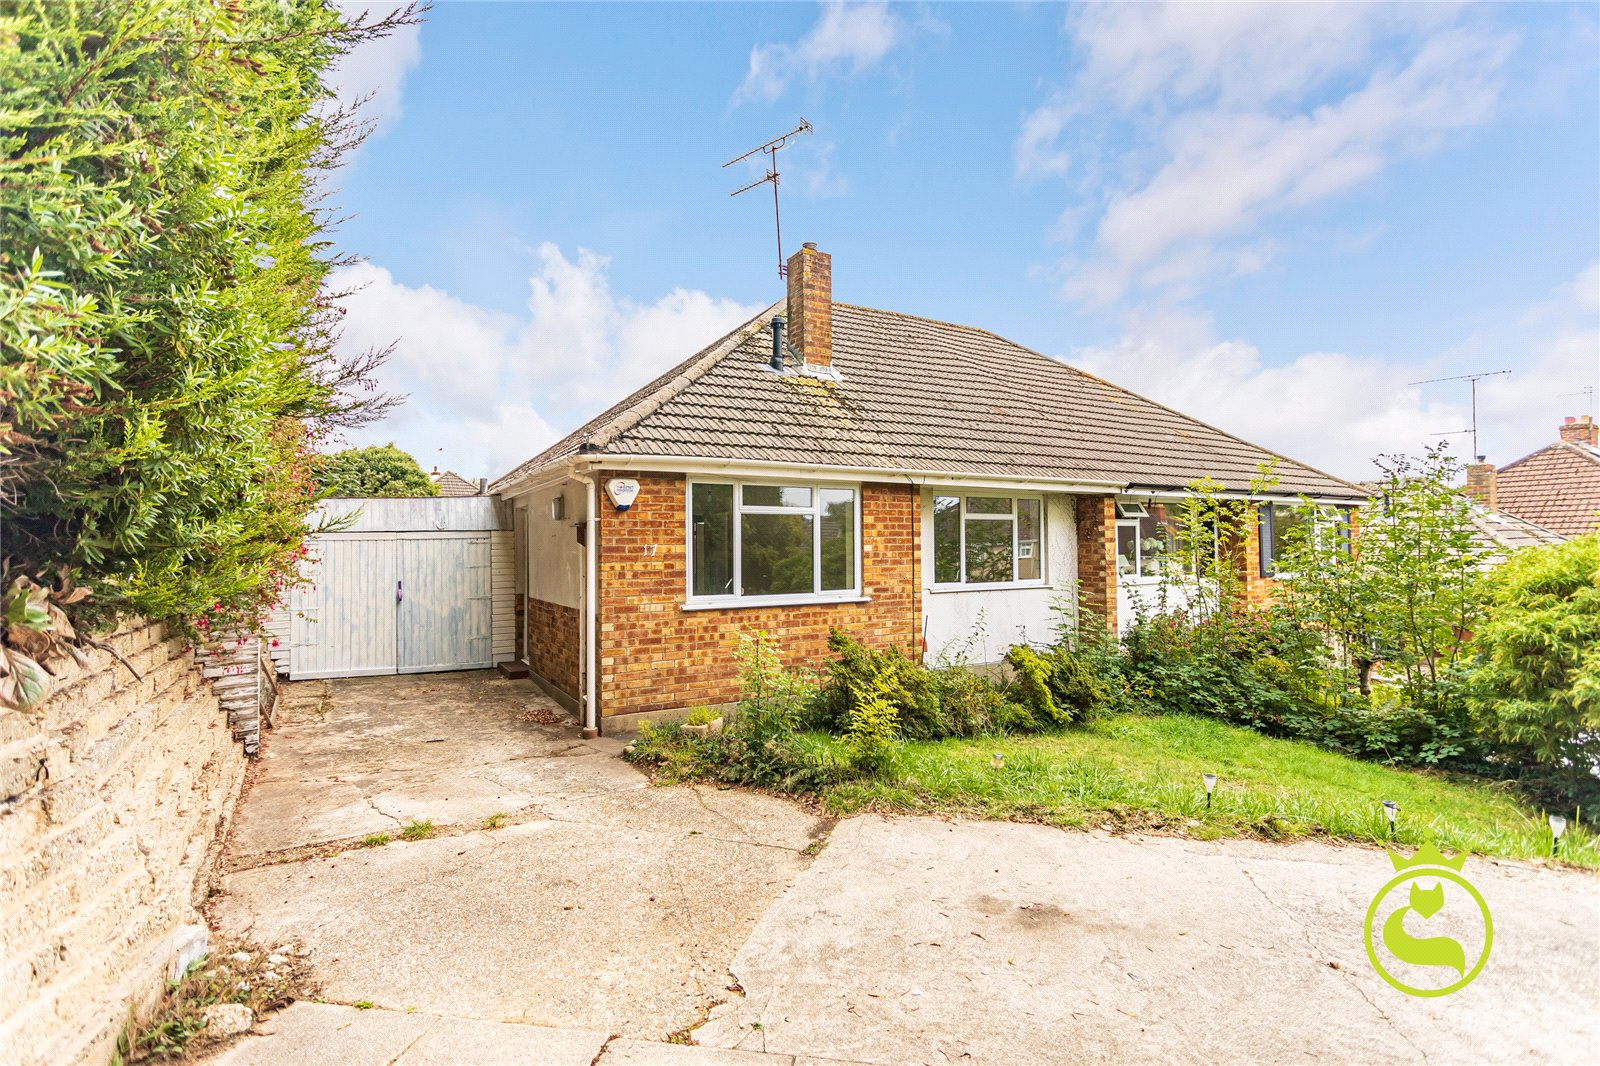 2 bed bungalow to rent in South Park Road, Poole 0